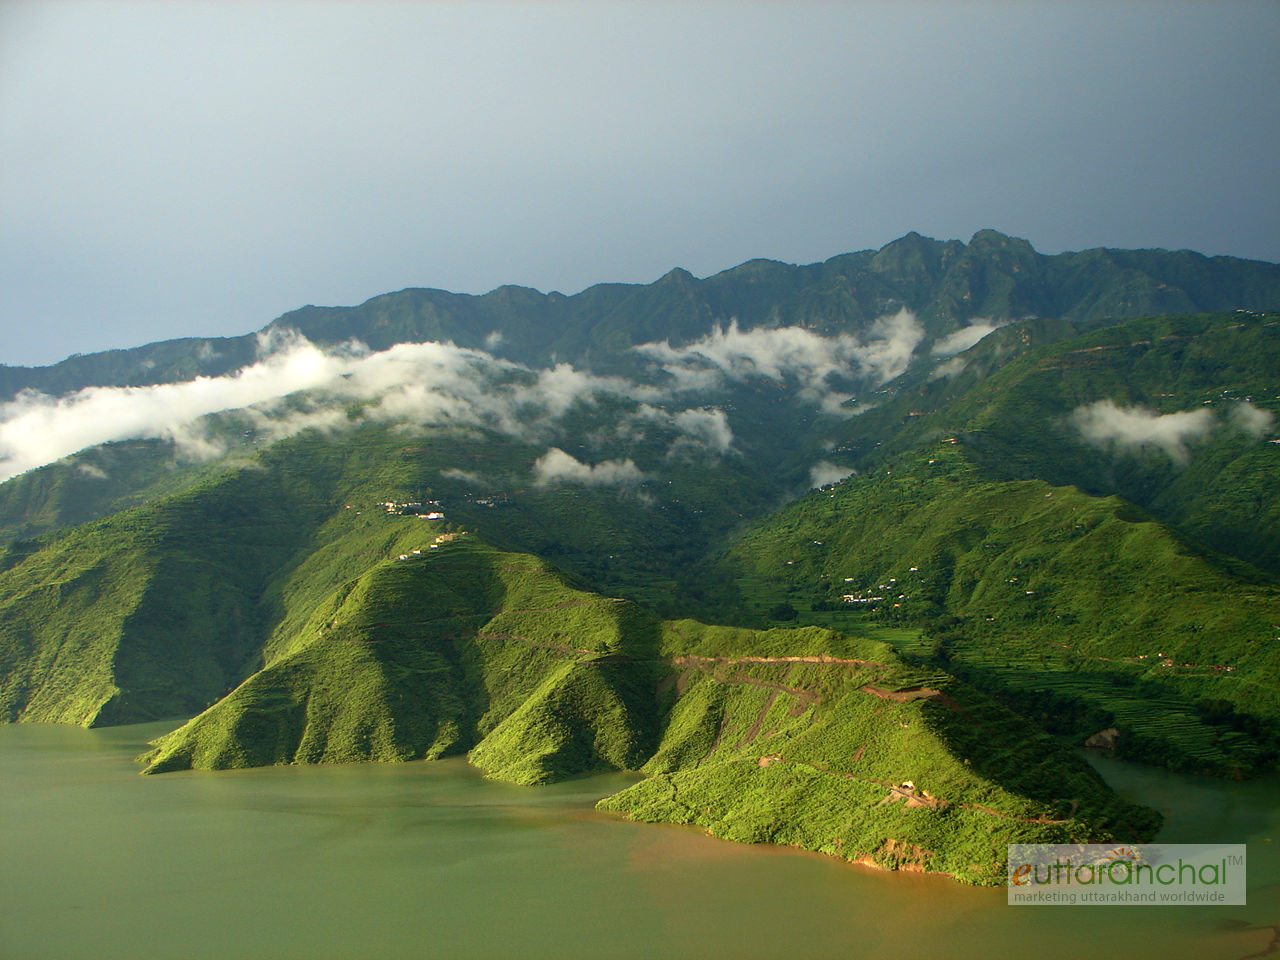 Tehri Garhwal during Monsoons